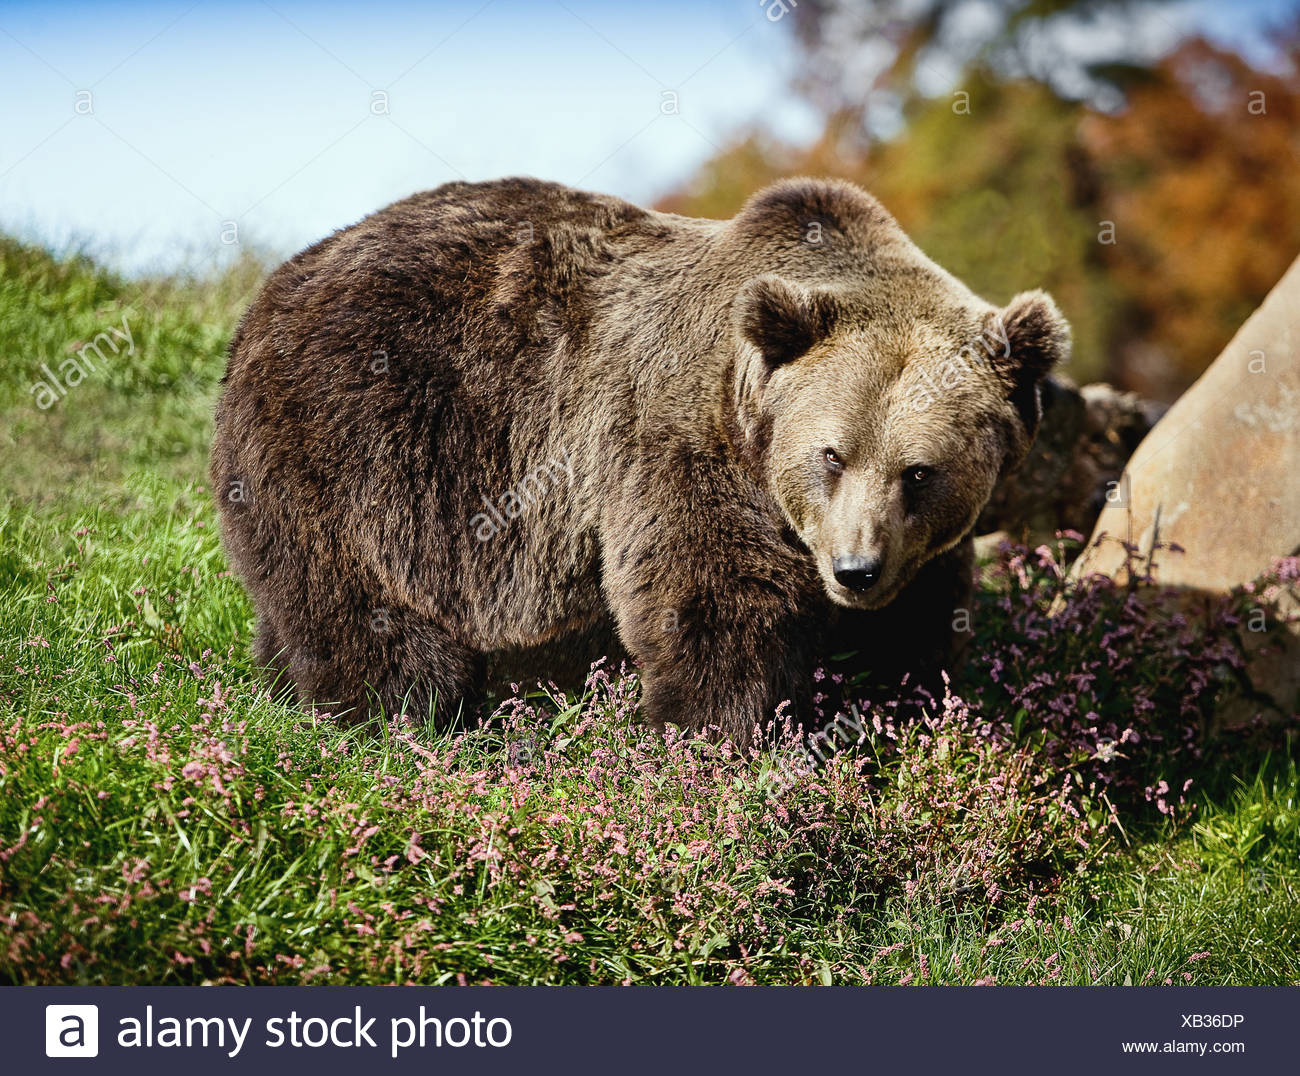 LARGE GRIZZLY BEAR ON GRASS LOOKING MENACINGLY AT CAMERA - Stock Image